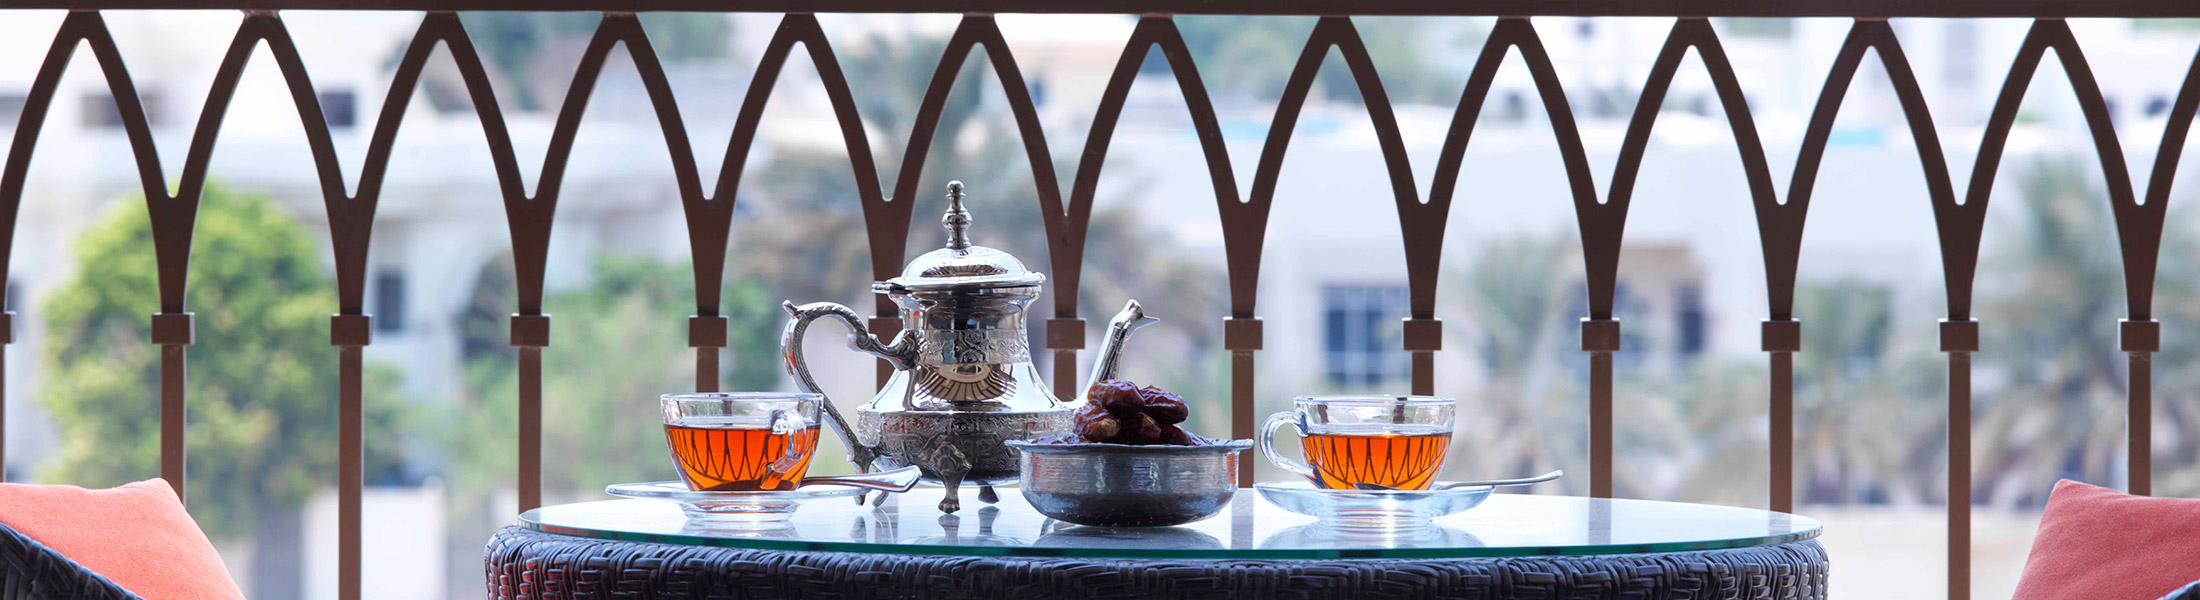 Arabian tea on teh balcony at Anantara Eastern Mangroves